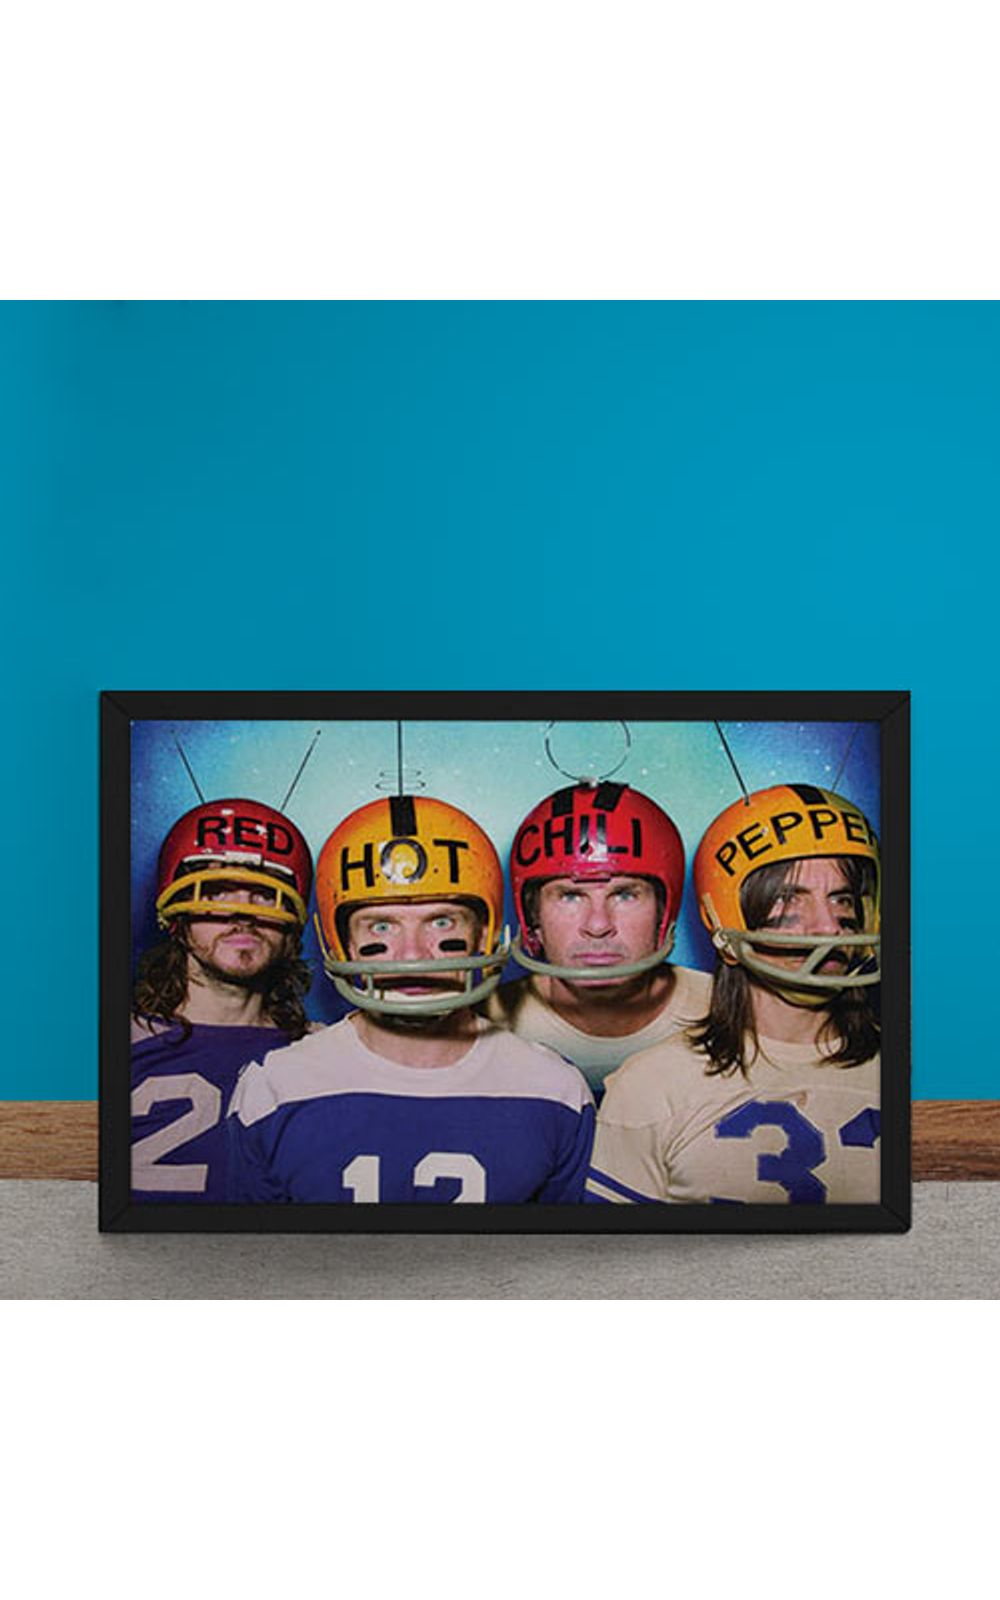 Foto 6 - Quadro Decorativo Red Hot Chili Peppers Futebol Americano